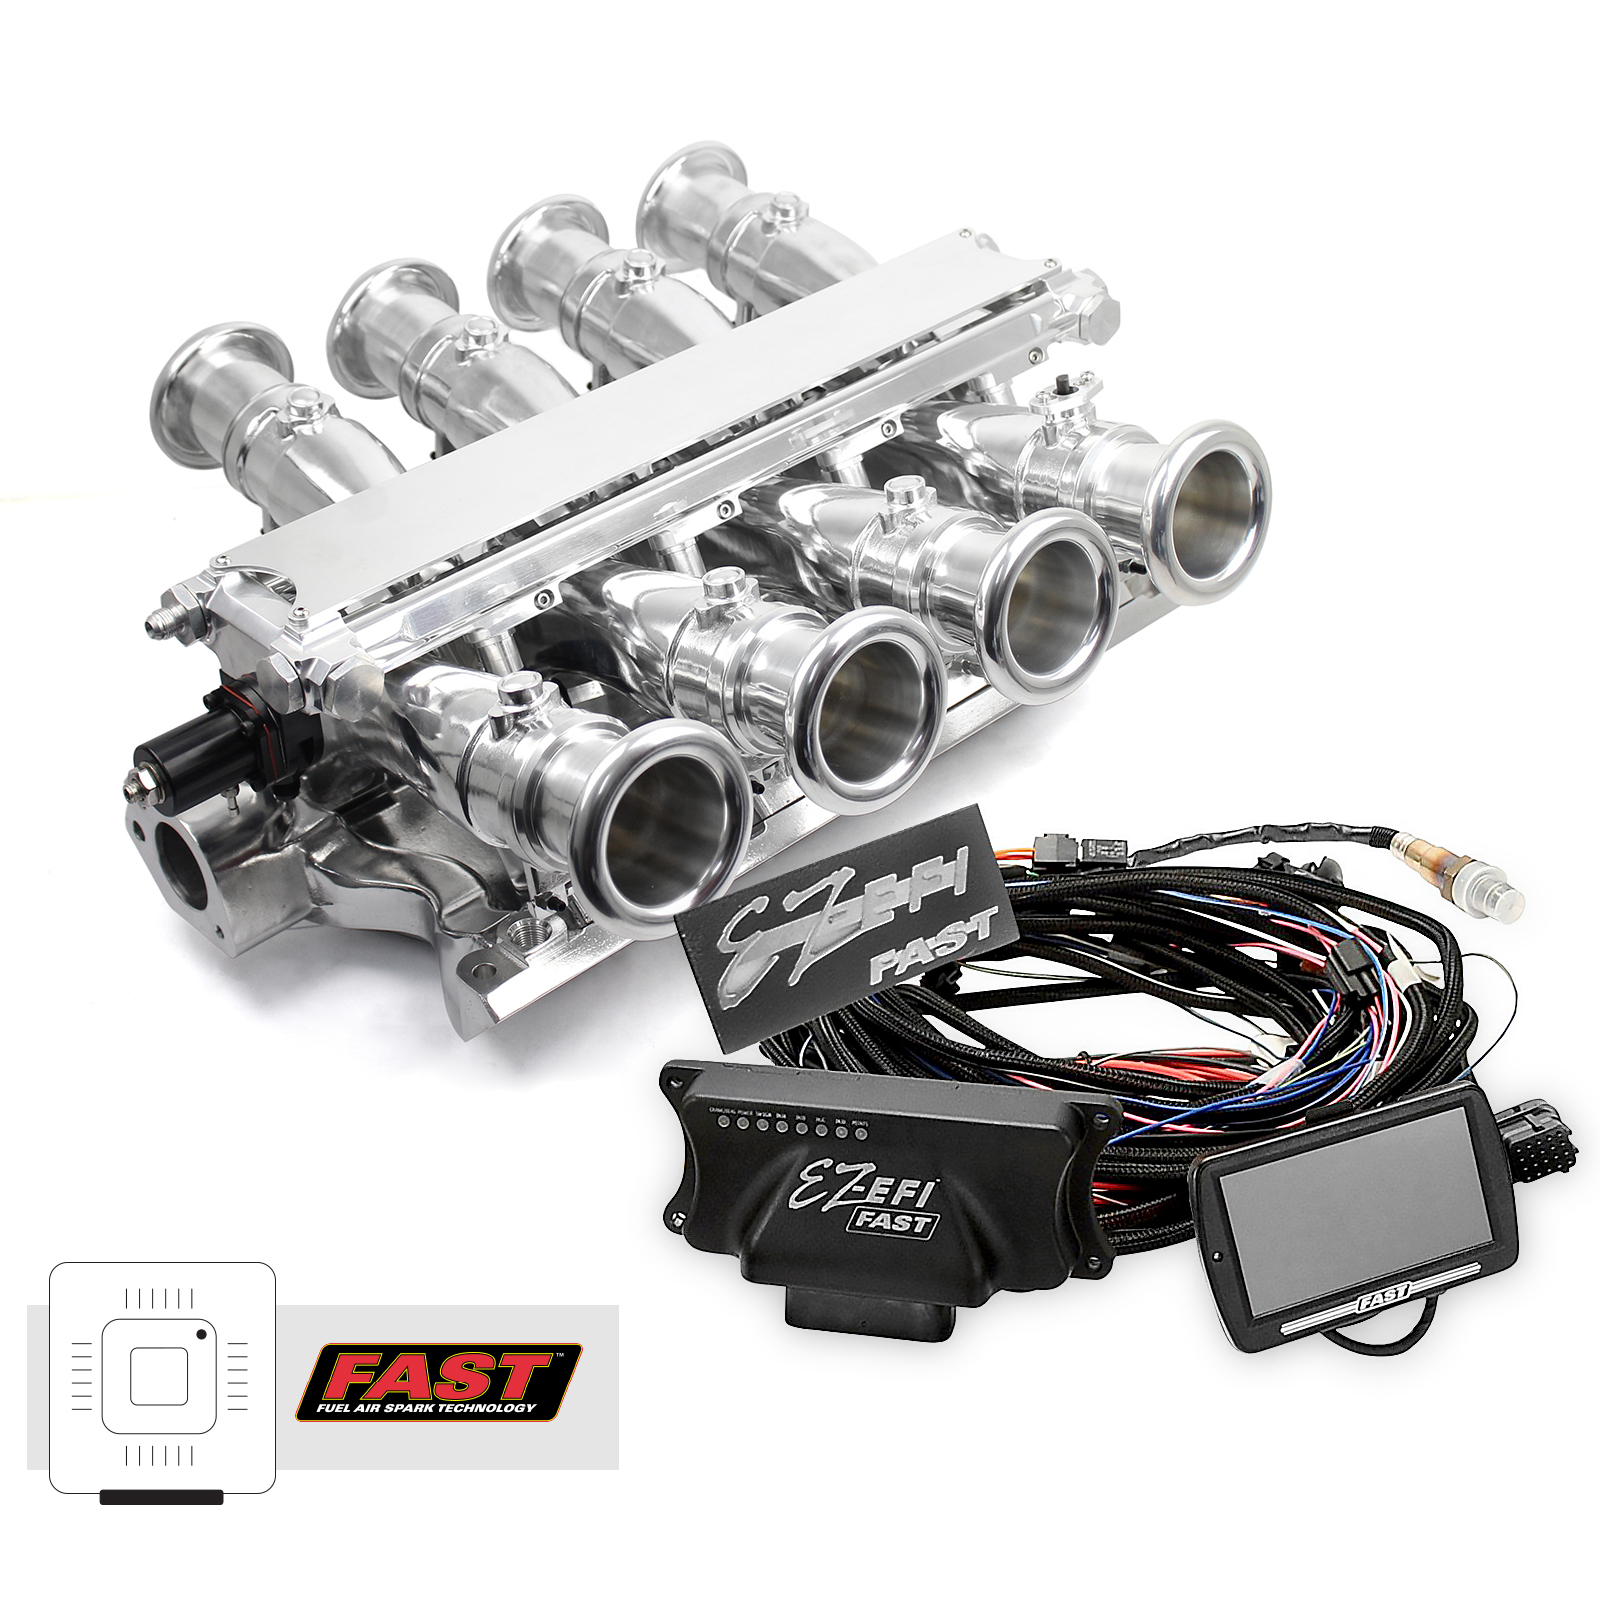 Ford 351W Windsor Sidedraft + FAST EZ-EFI 2.0 Fuel Injection System - Polished